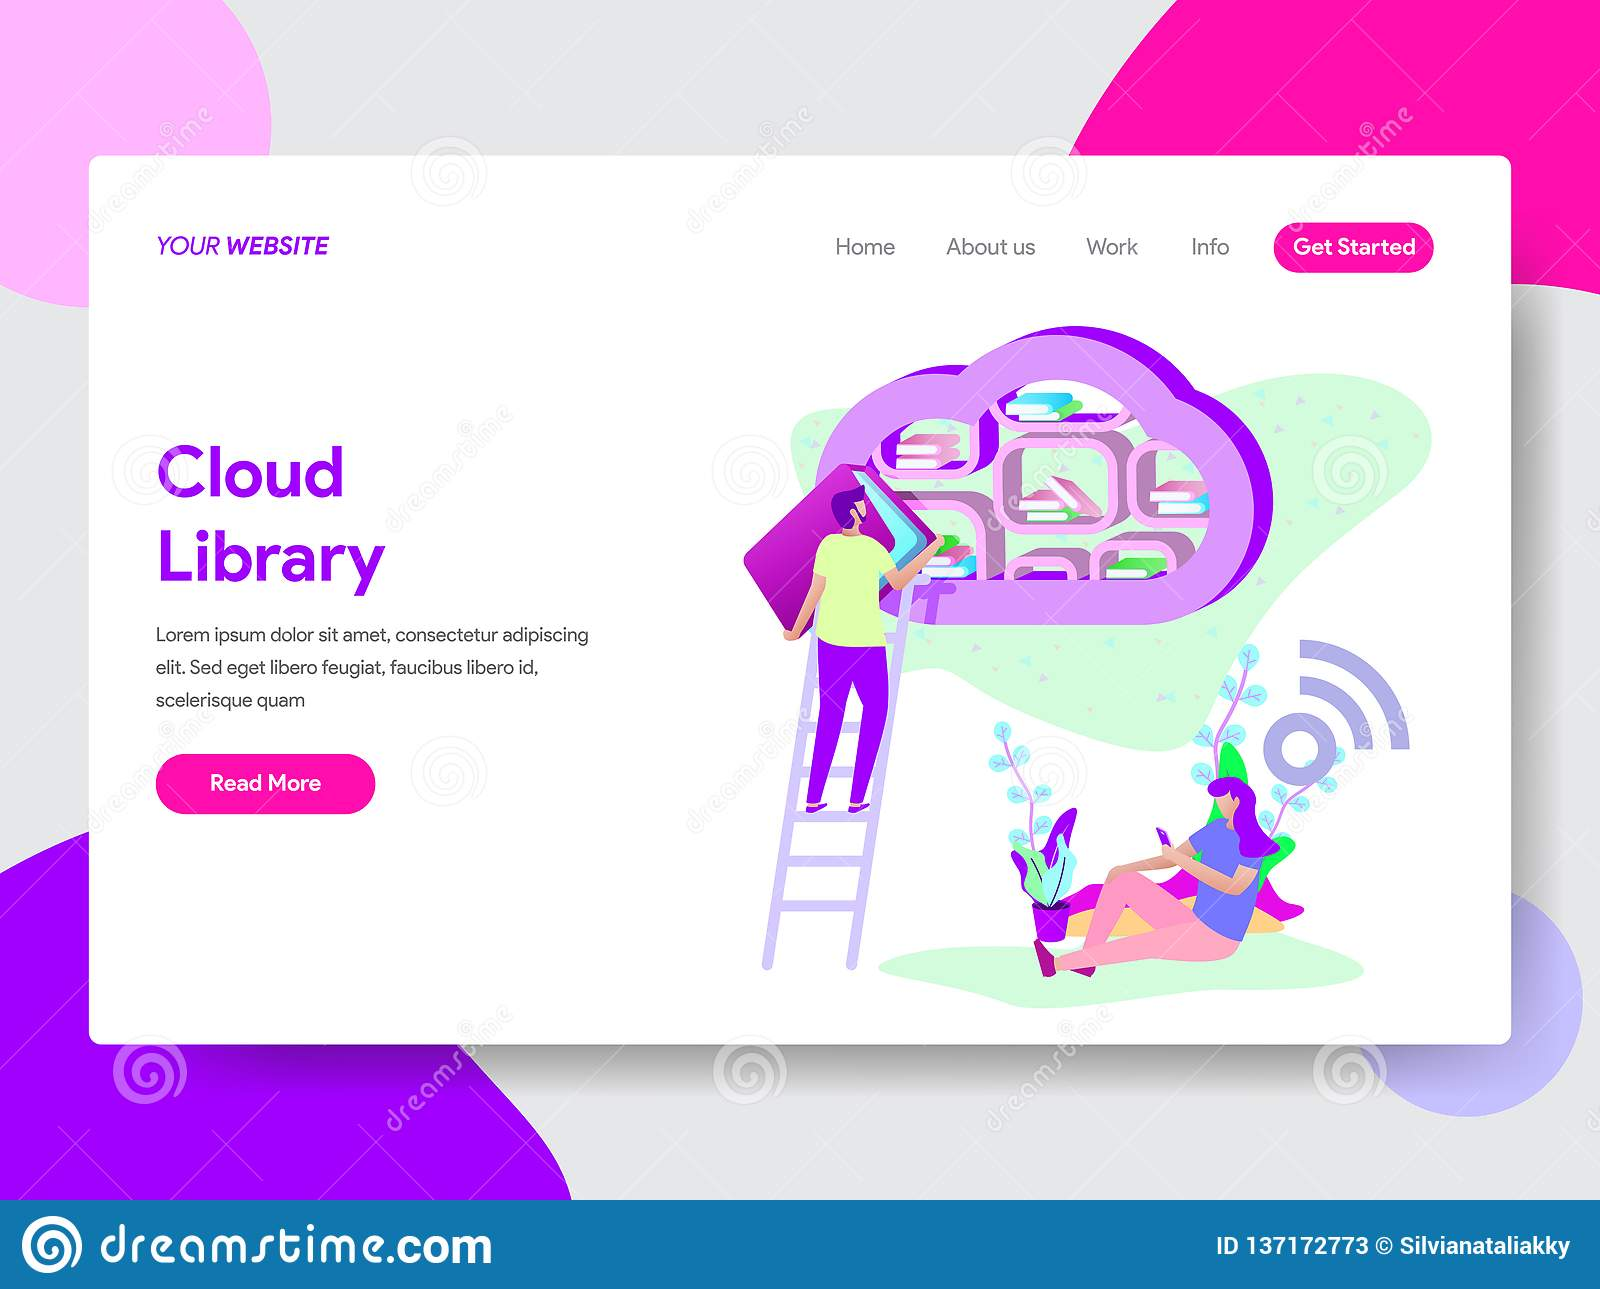 Landing page template of Cloud Library Illustration Concept. Modern flat design concept of web page design